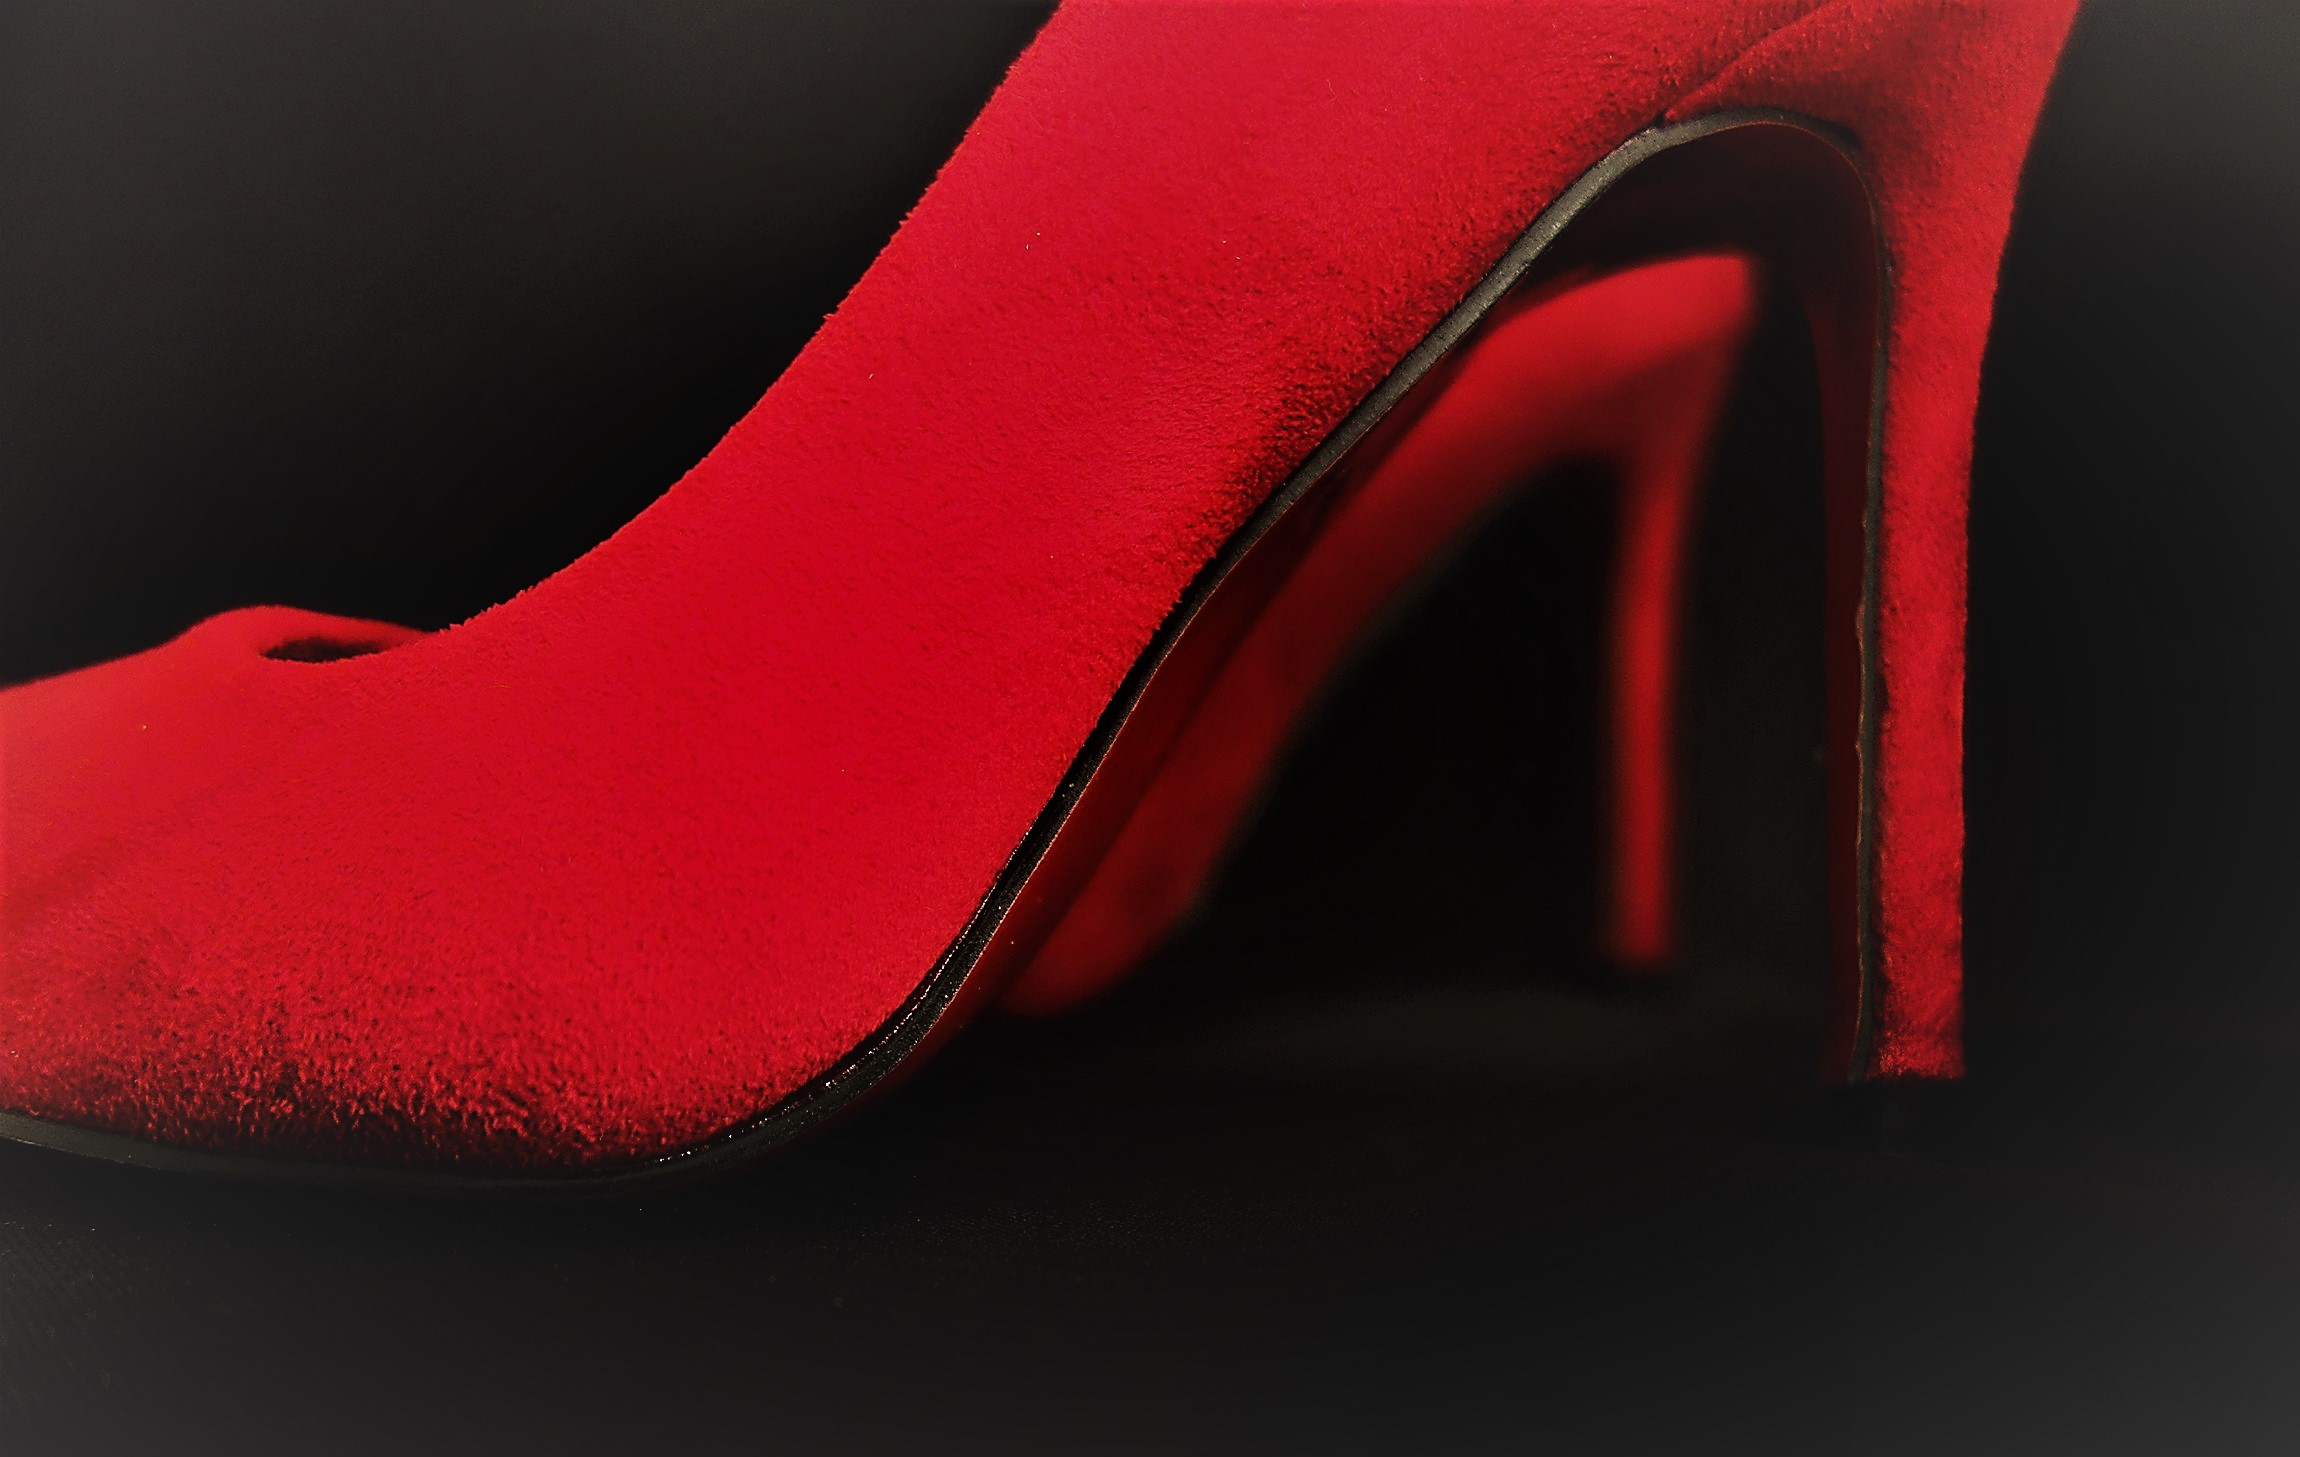 Louboutin – Red soles, yay not nay?